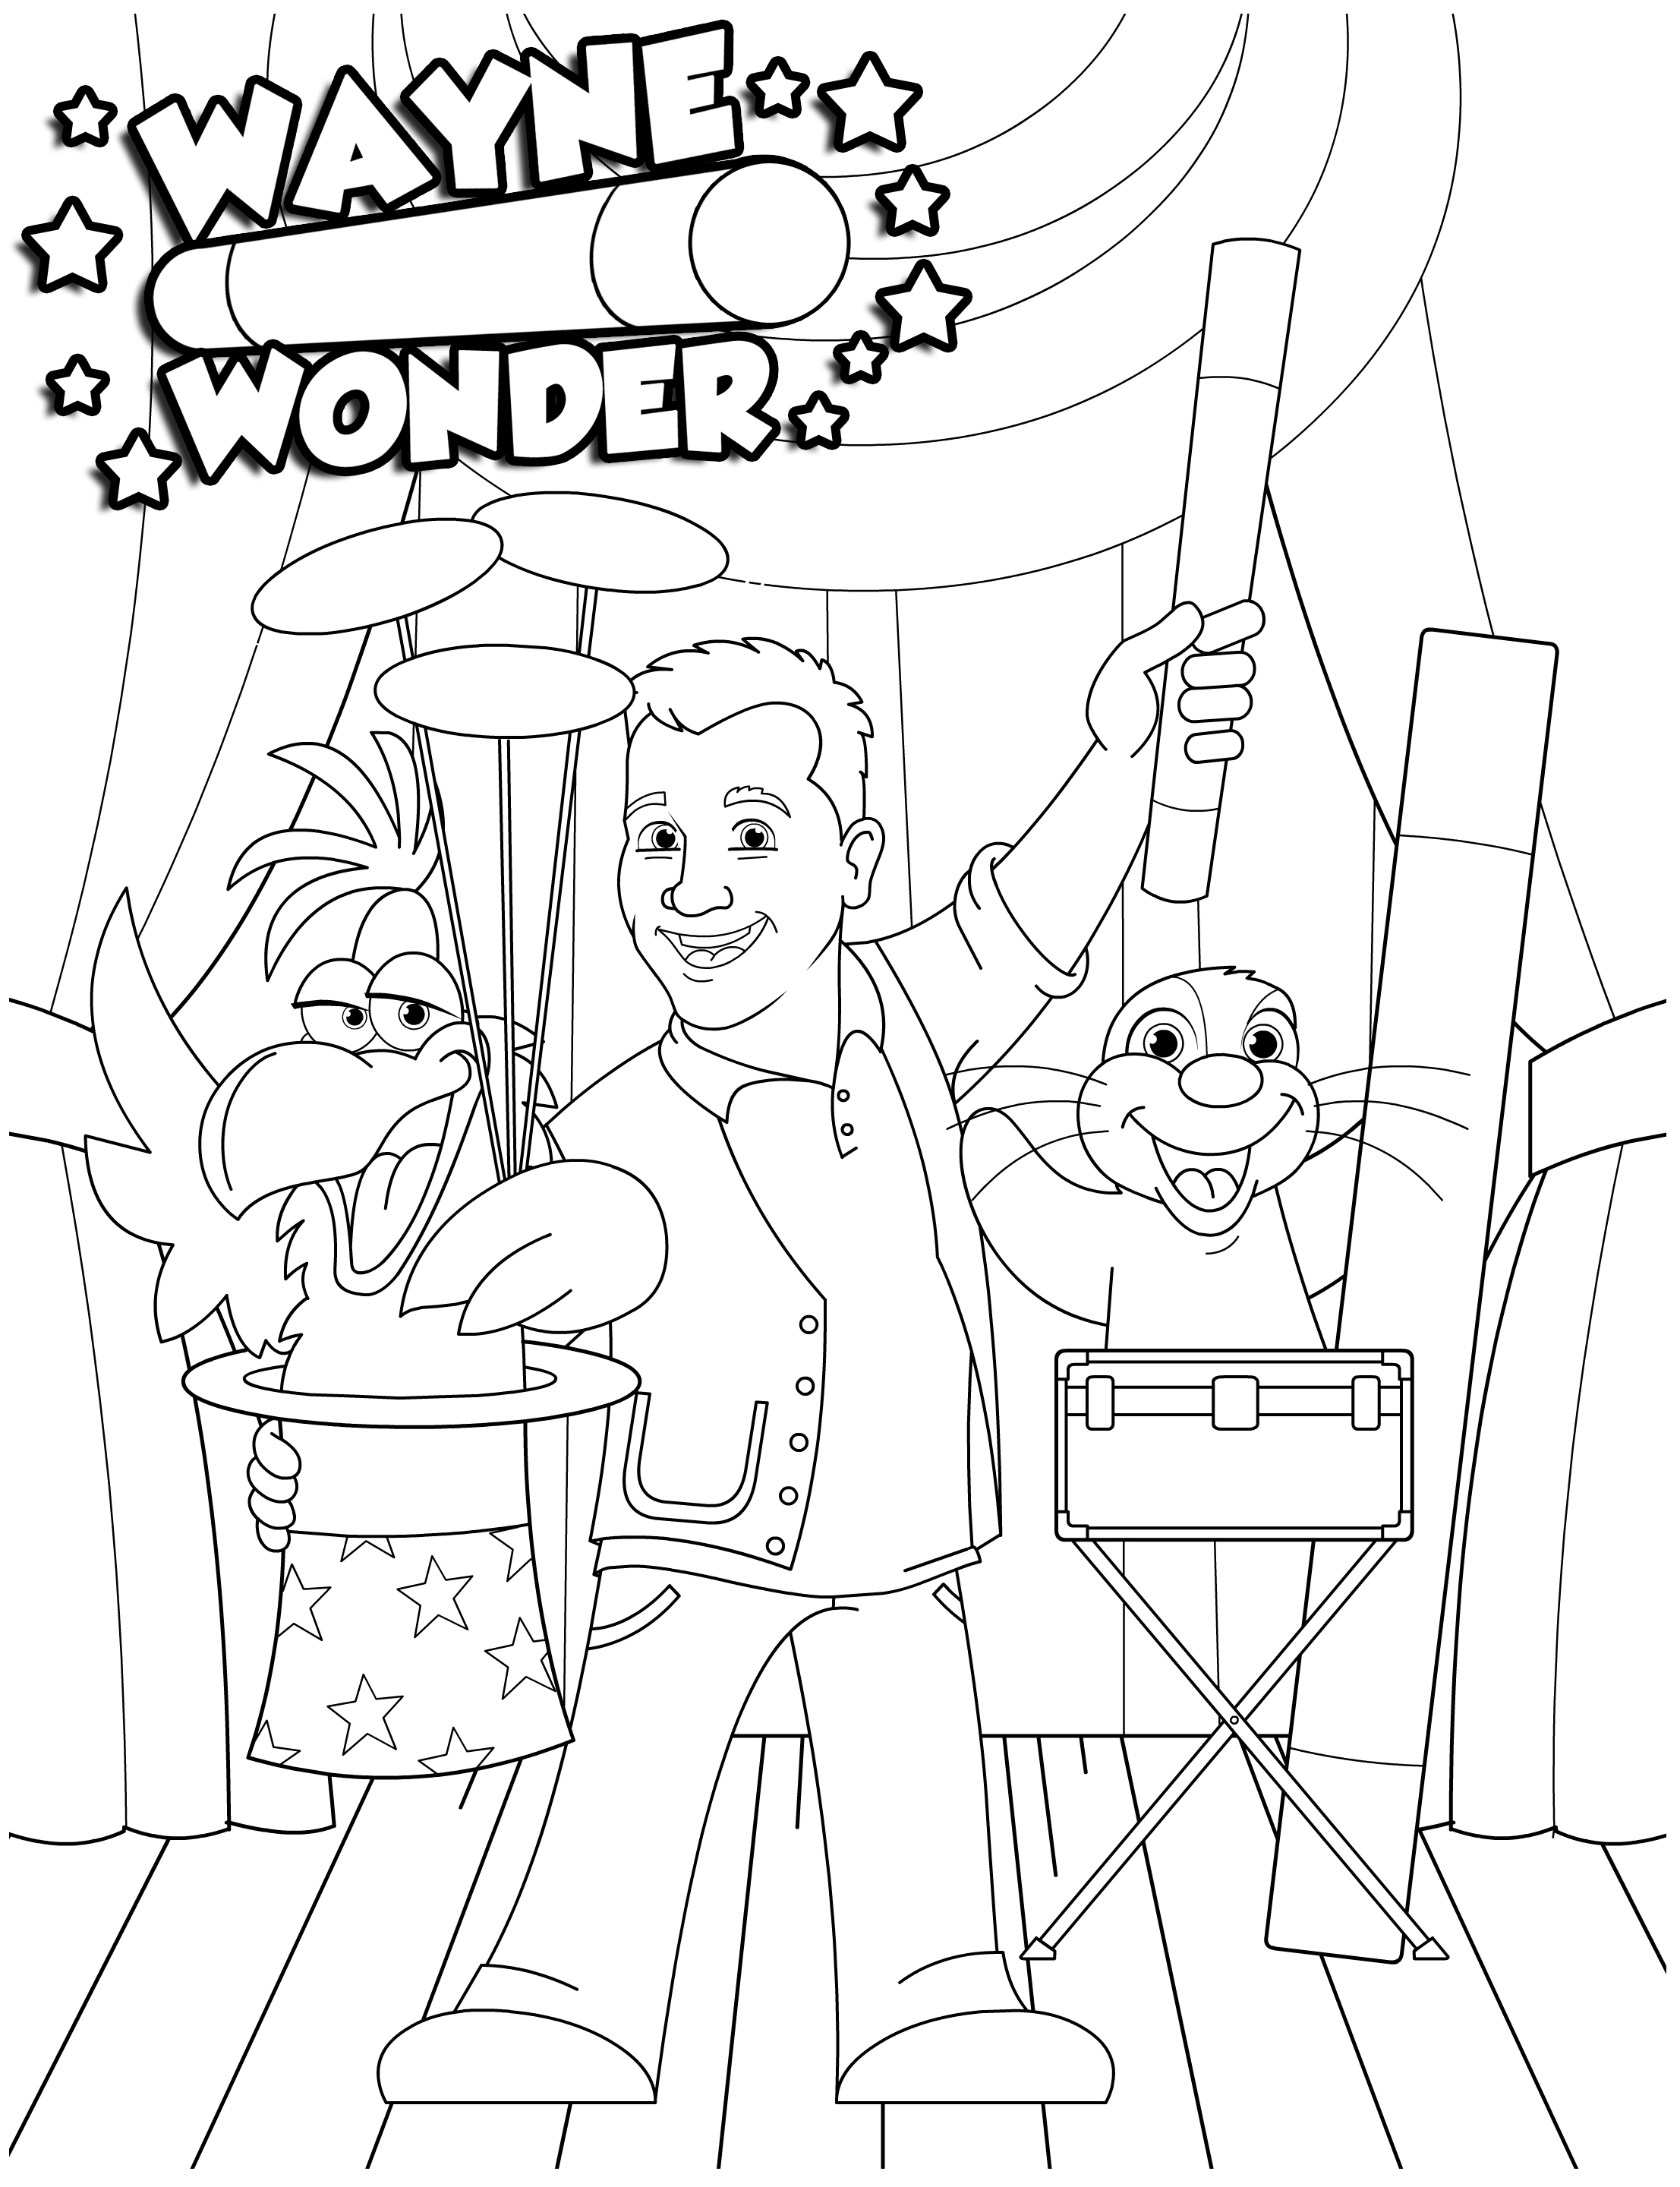 Wayne Murphy colouring sheet.jpg